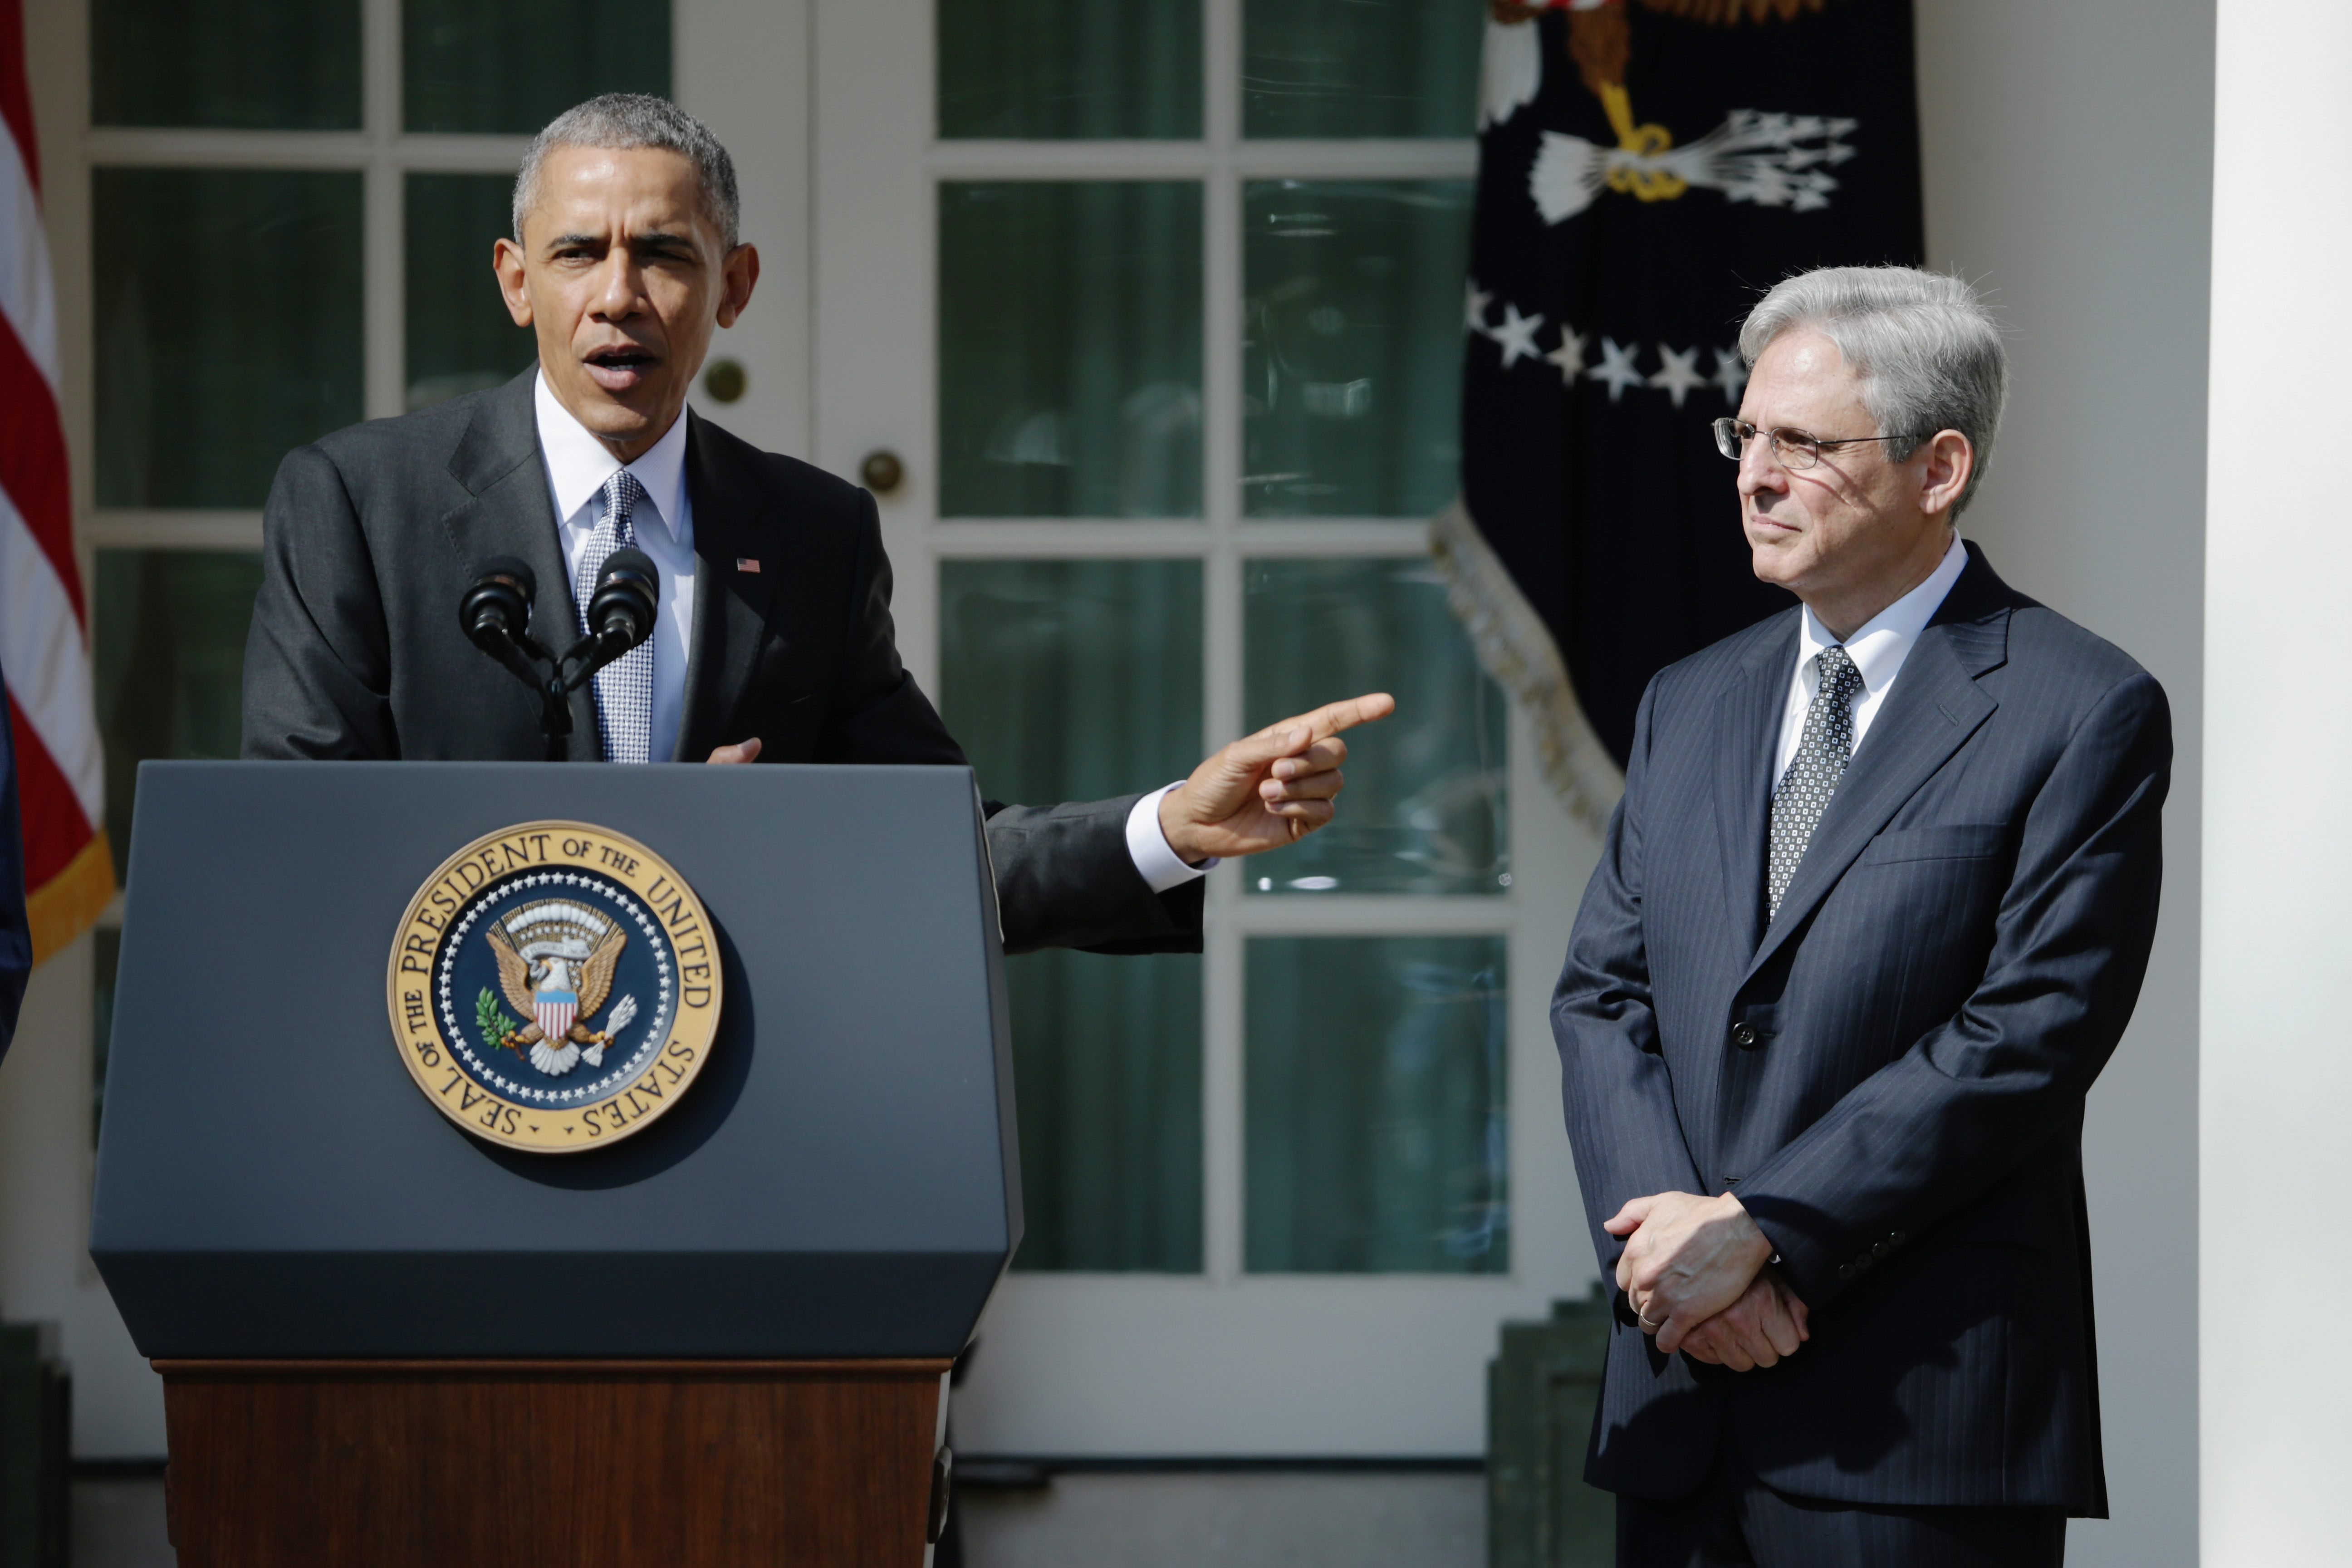 President Barack Obama stands with Judge Merrick B. Garland, while nominating him to the US Supreme Court, in the Rose Garden at the White House, March 16, 1016. (Getty Images)